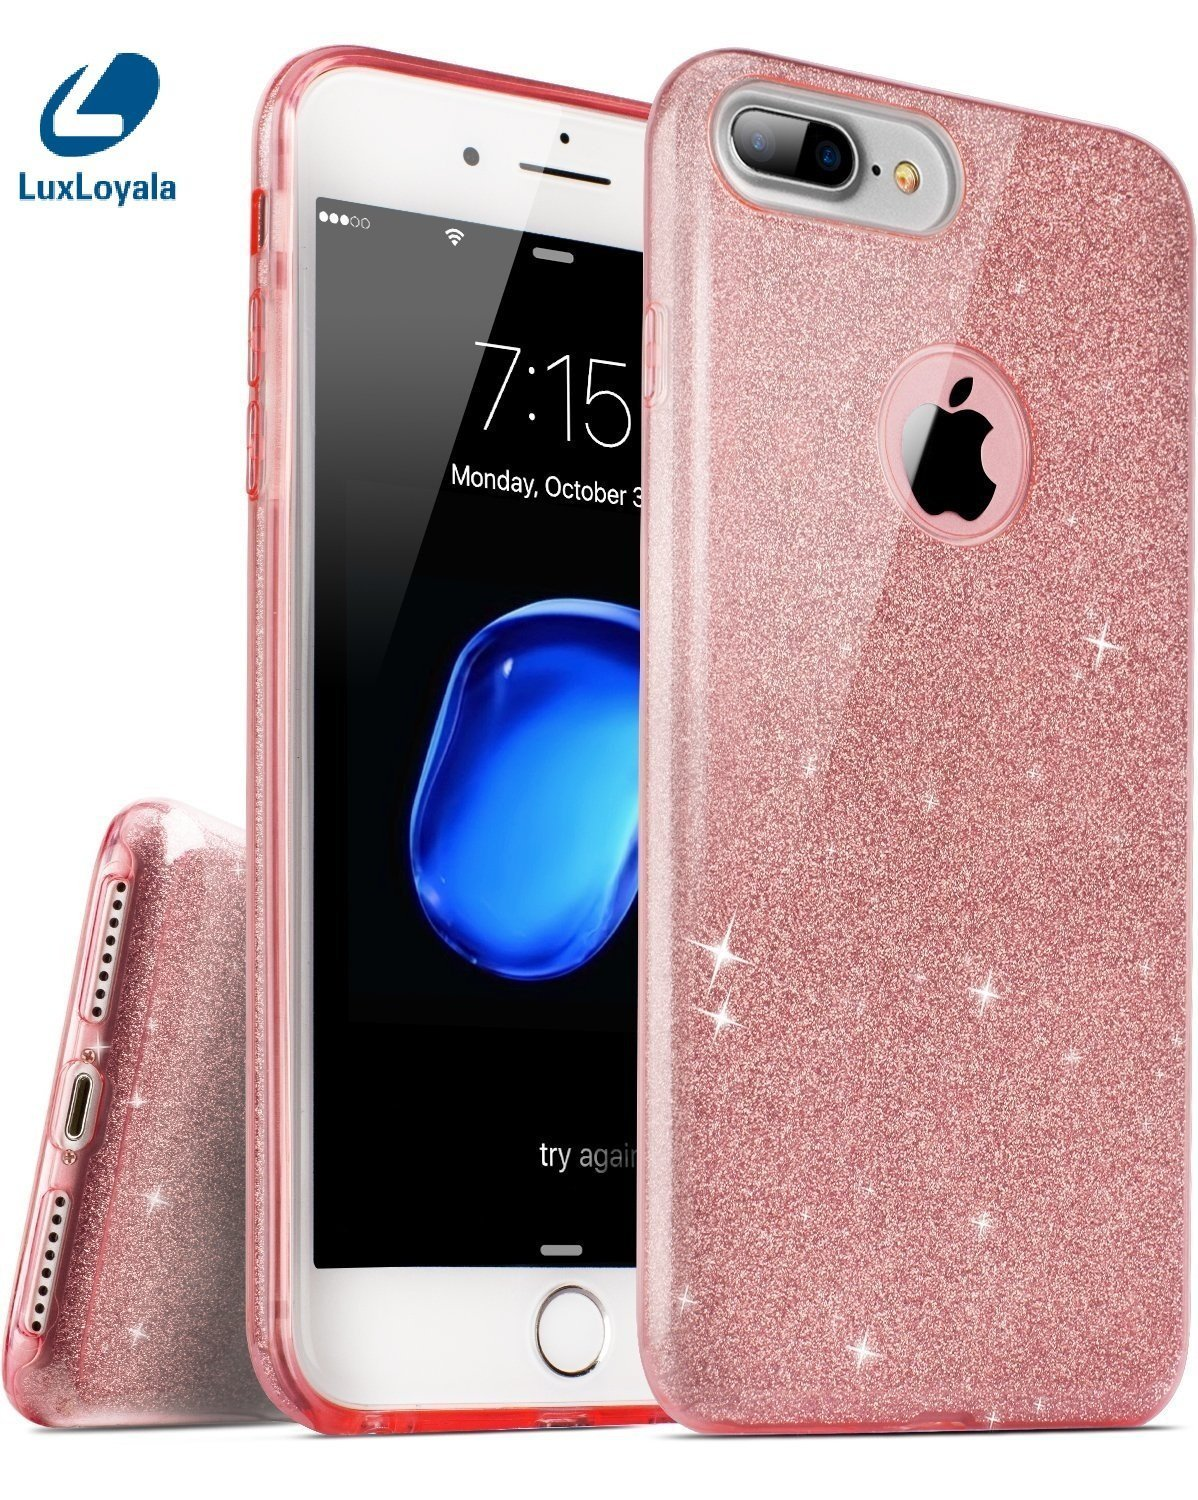 Cute iPhone 7 Plus Case for Girl, Pink iPhone7 Plus Girly Case Shockproof  Silicone Bling Glitter Sparkle Transparent phone Protective case,not fit